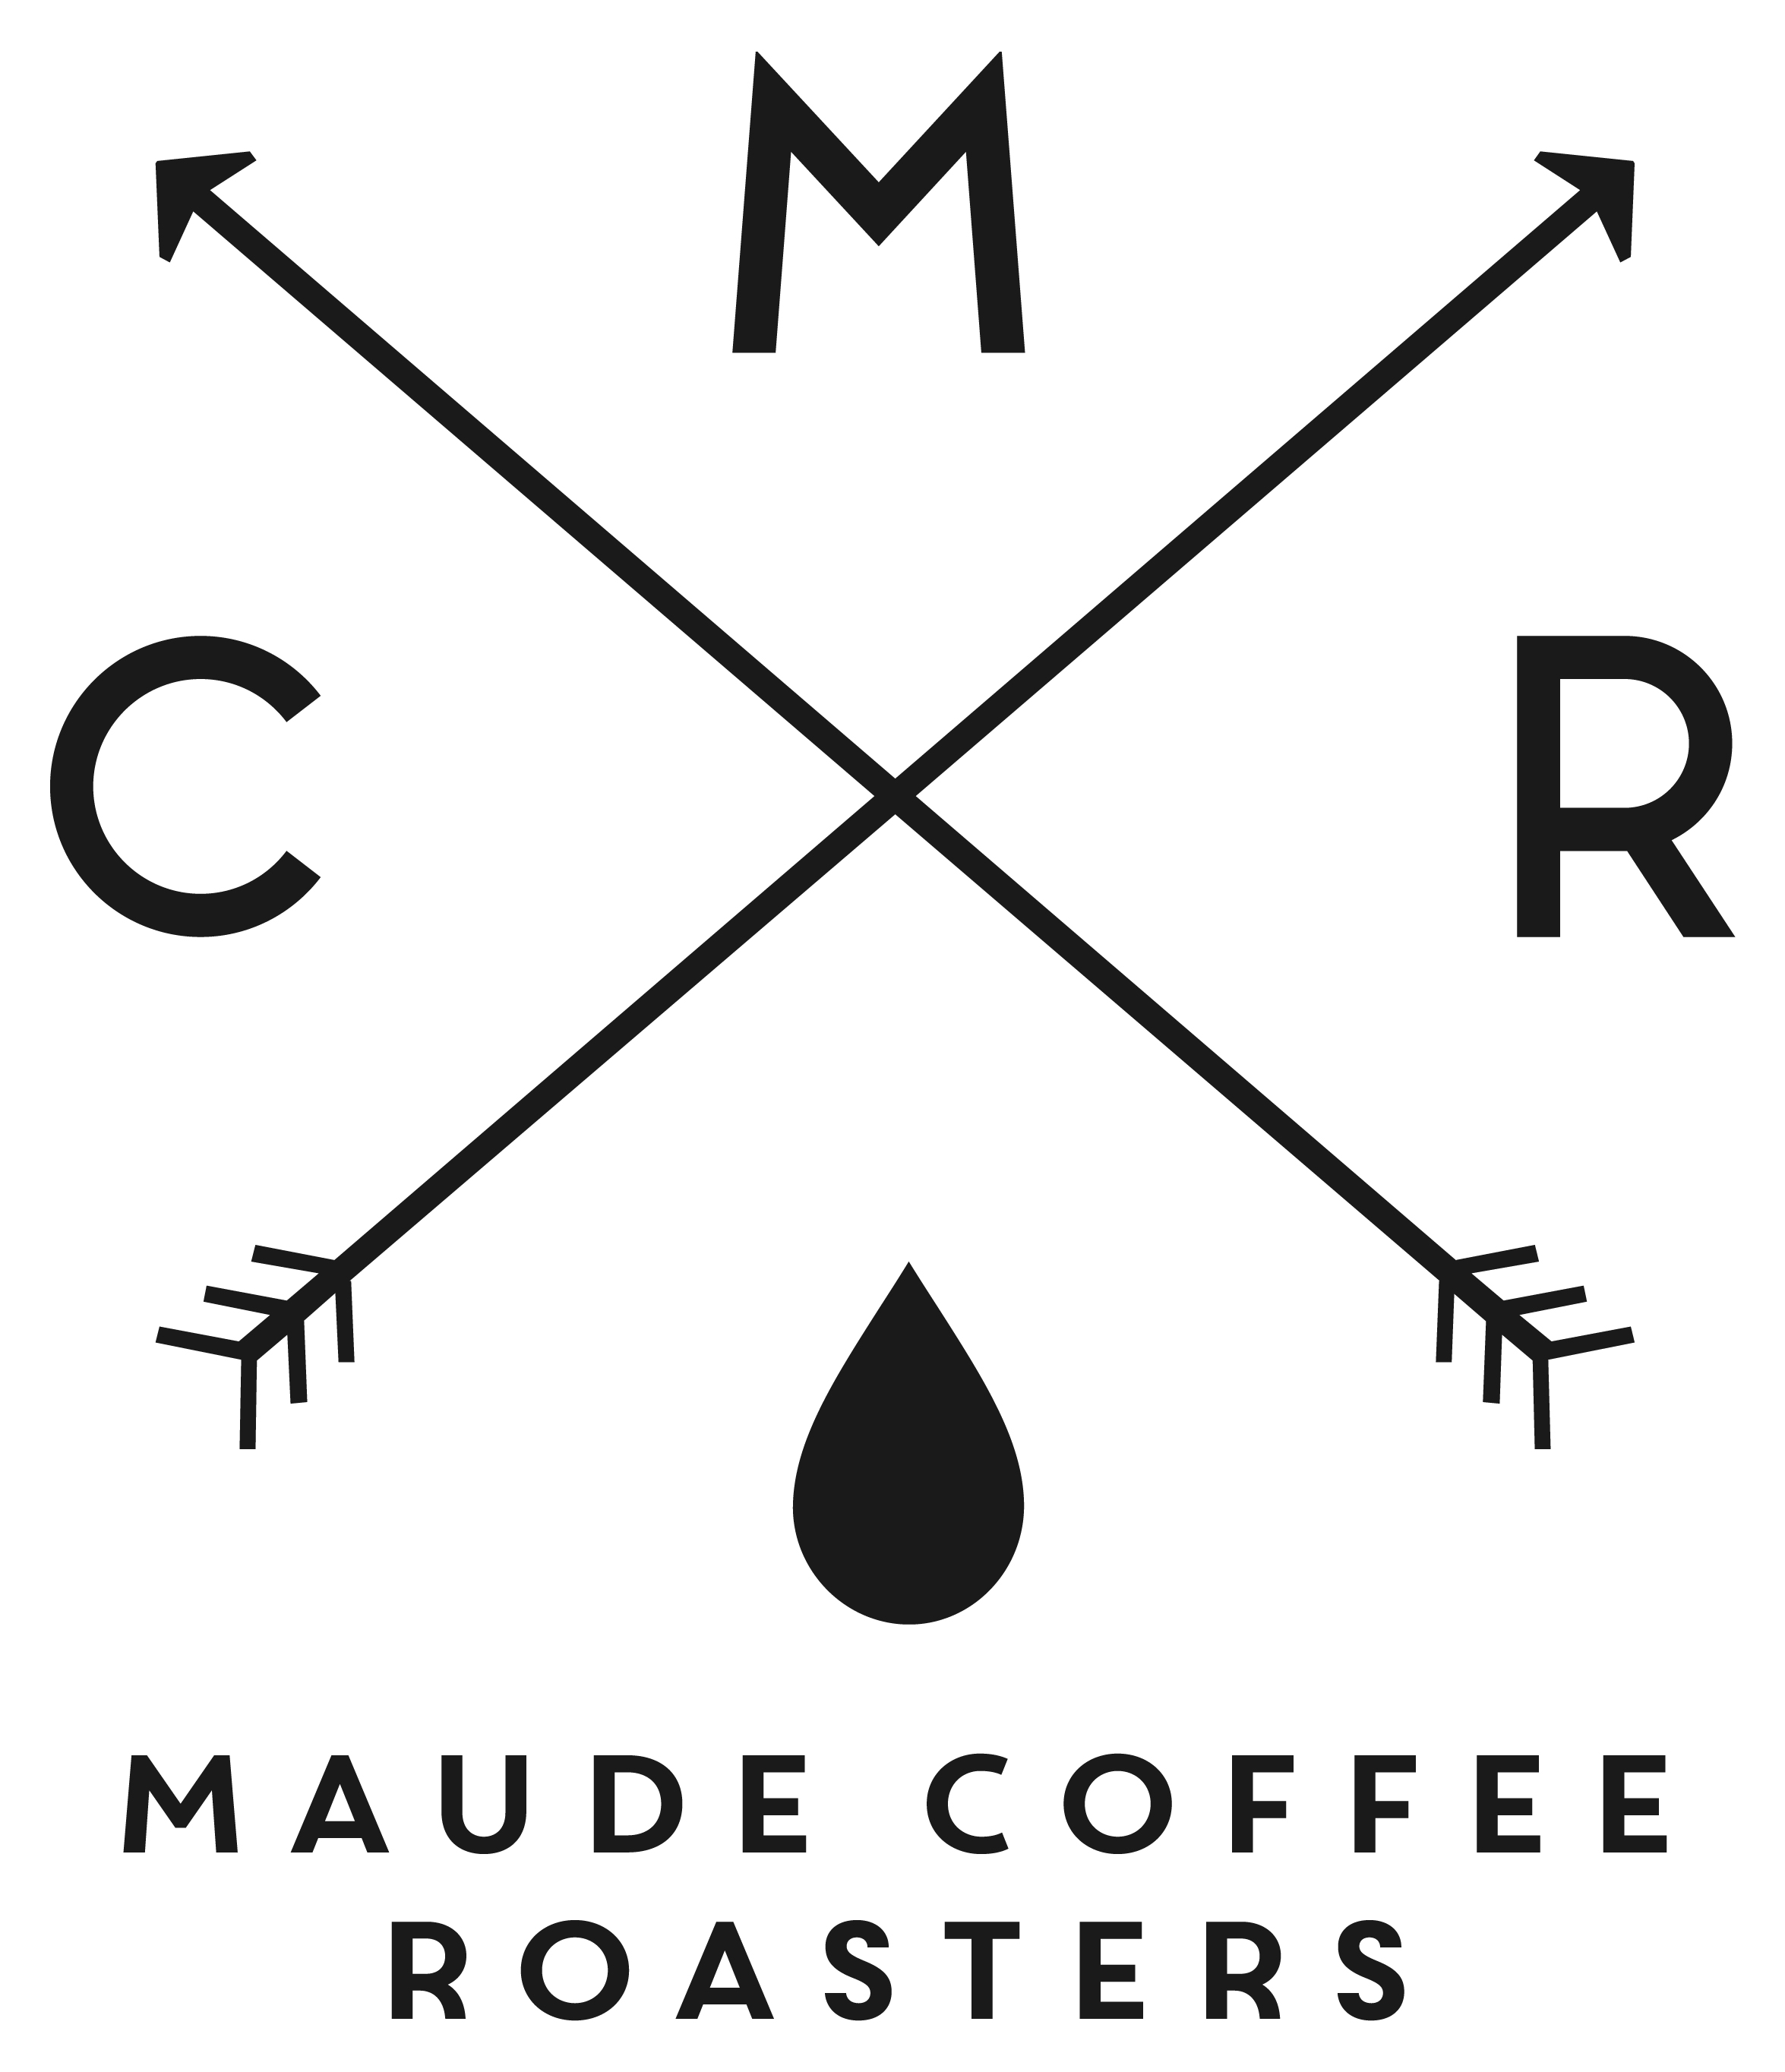 Maude Coffee